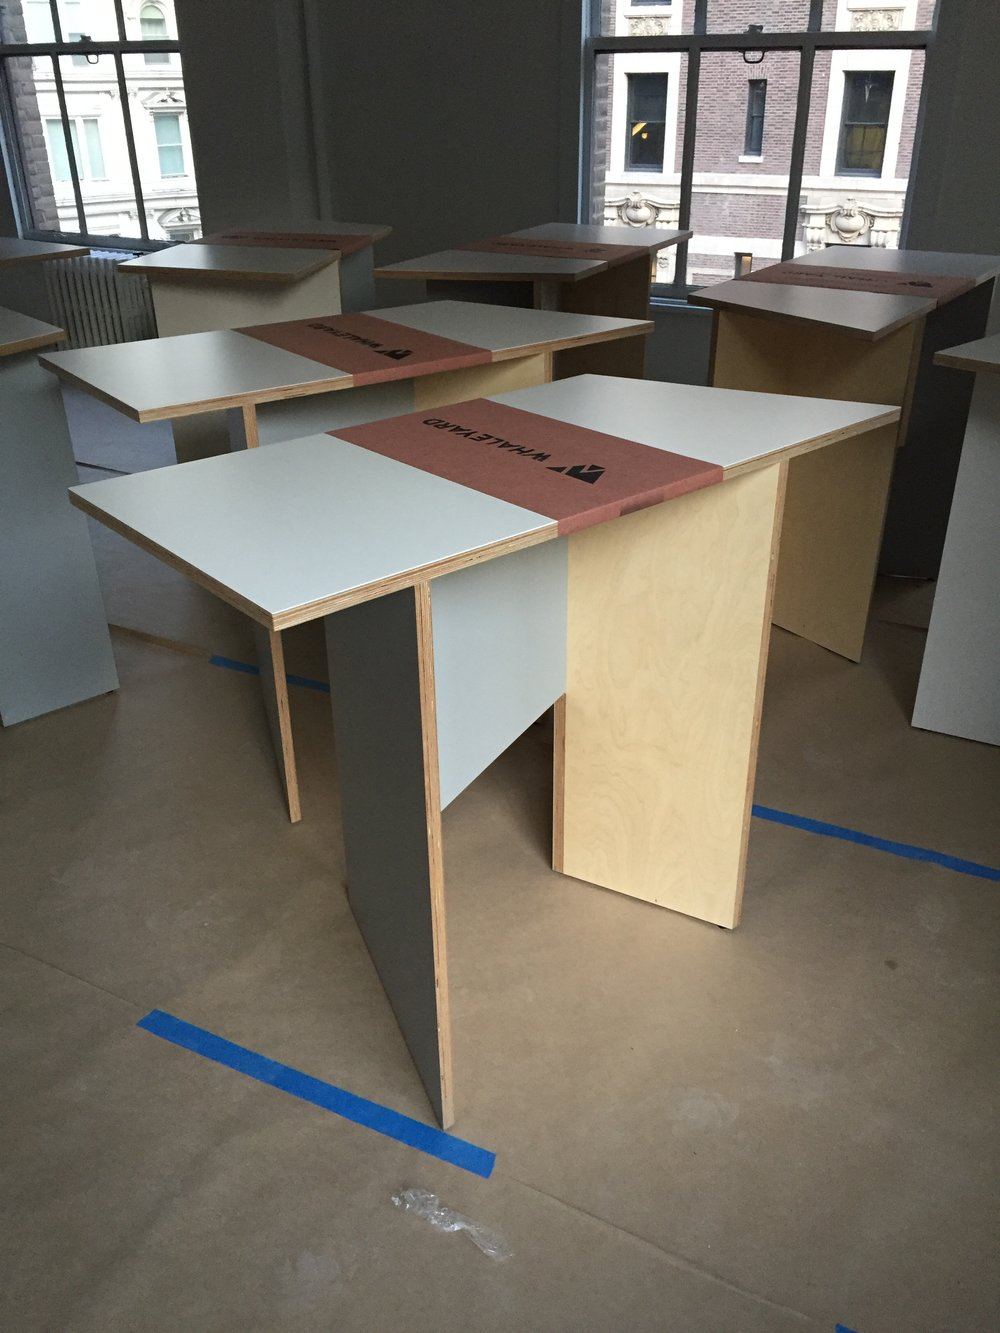 Stand up modular desks mack weldon start up furniture custom made whaleyard